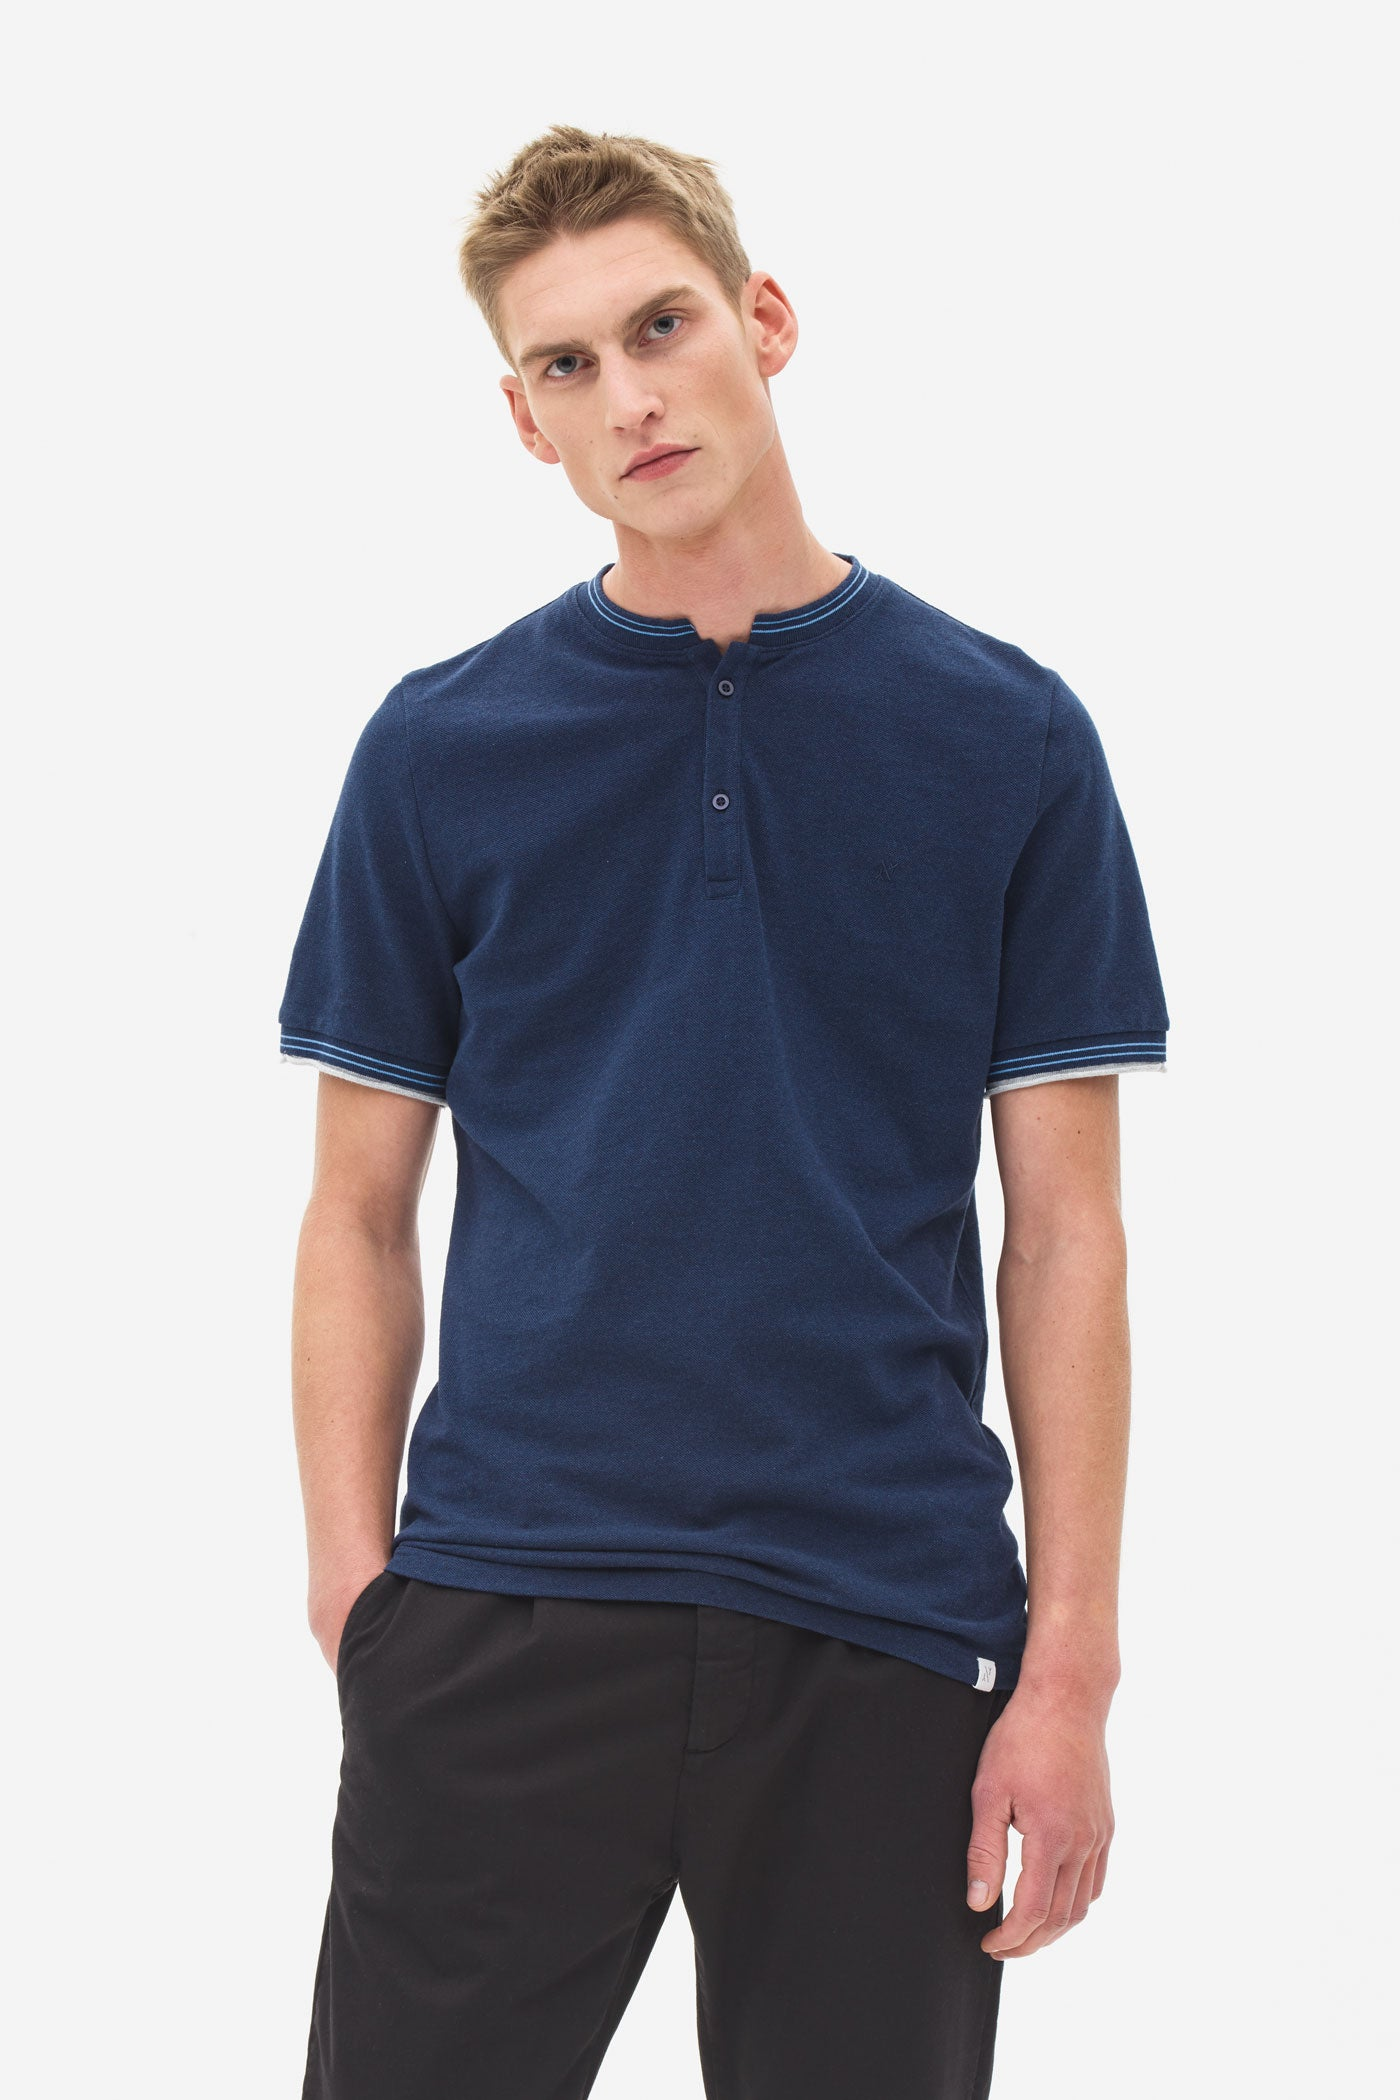 Stand up Collar Pique Polo night sky